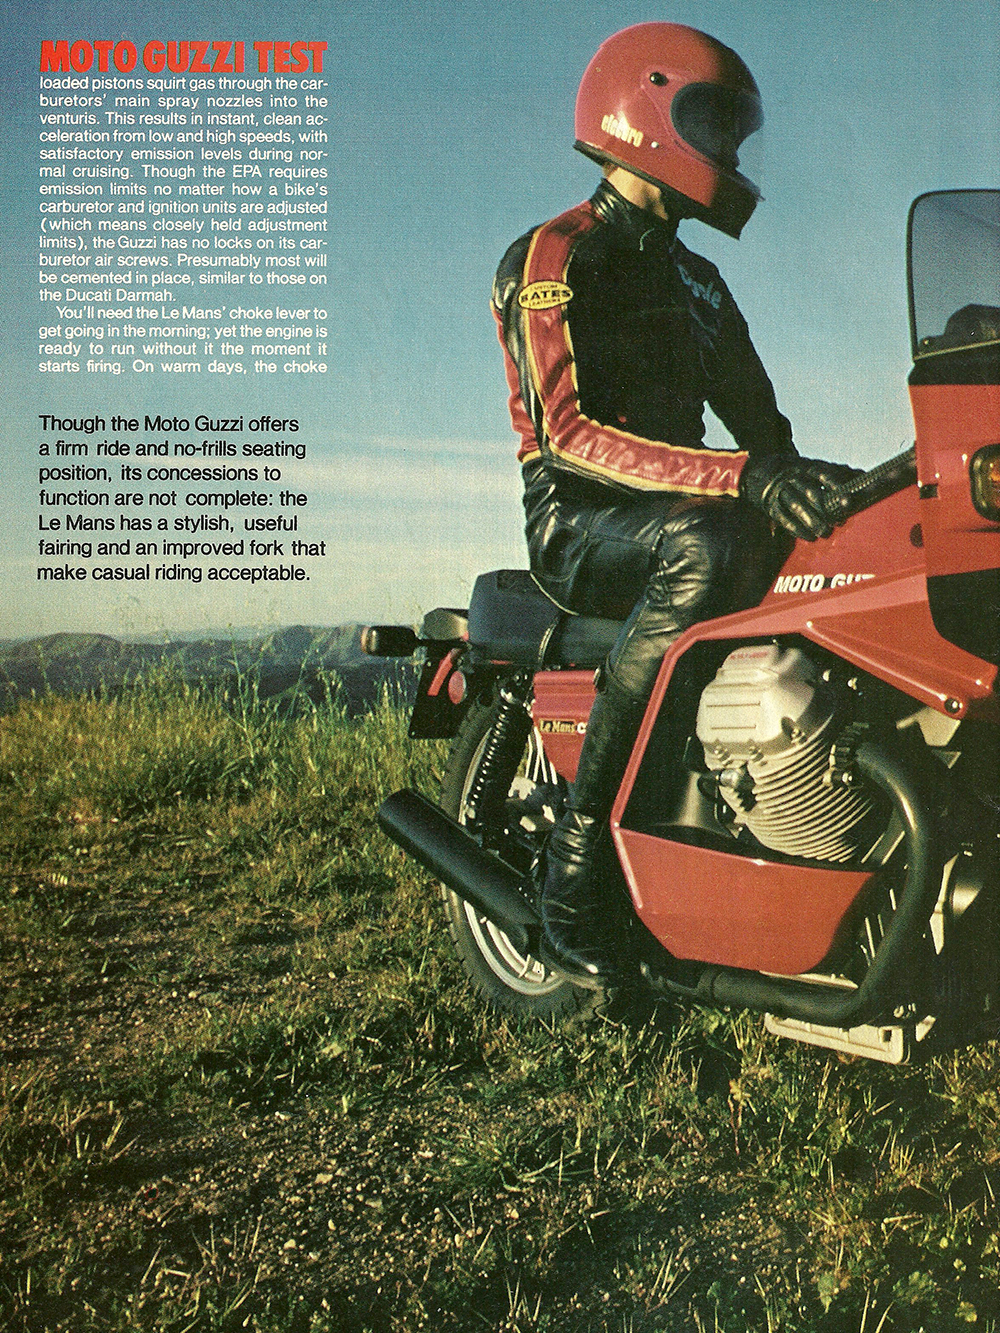 1980 Moto Guzzi Lemans CX100 road test 03.jpg